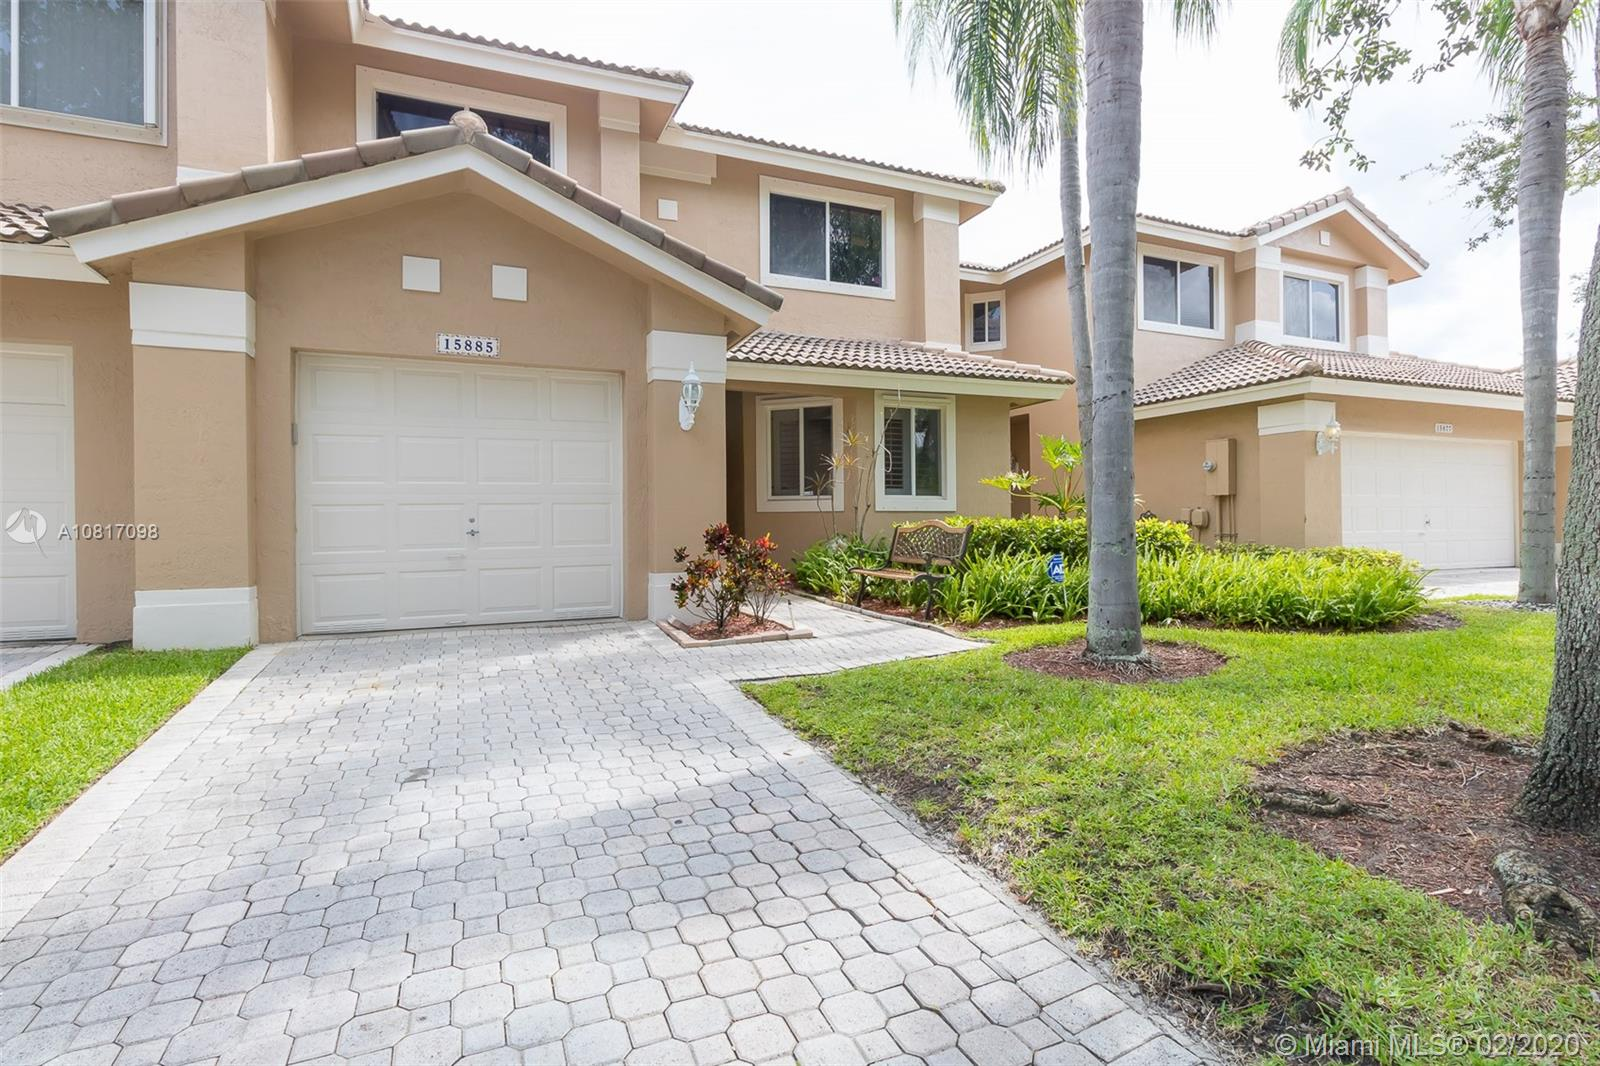 Family & peaceful community, beautiful courtyards with lush landscaping, 3 bedrooms, 2 1/2 bathroom, stunning and bright living room with open kitchen, enjoy cooking and watching your kids playing around, just 5 minutes away from the school, restaurants and grocery store.